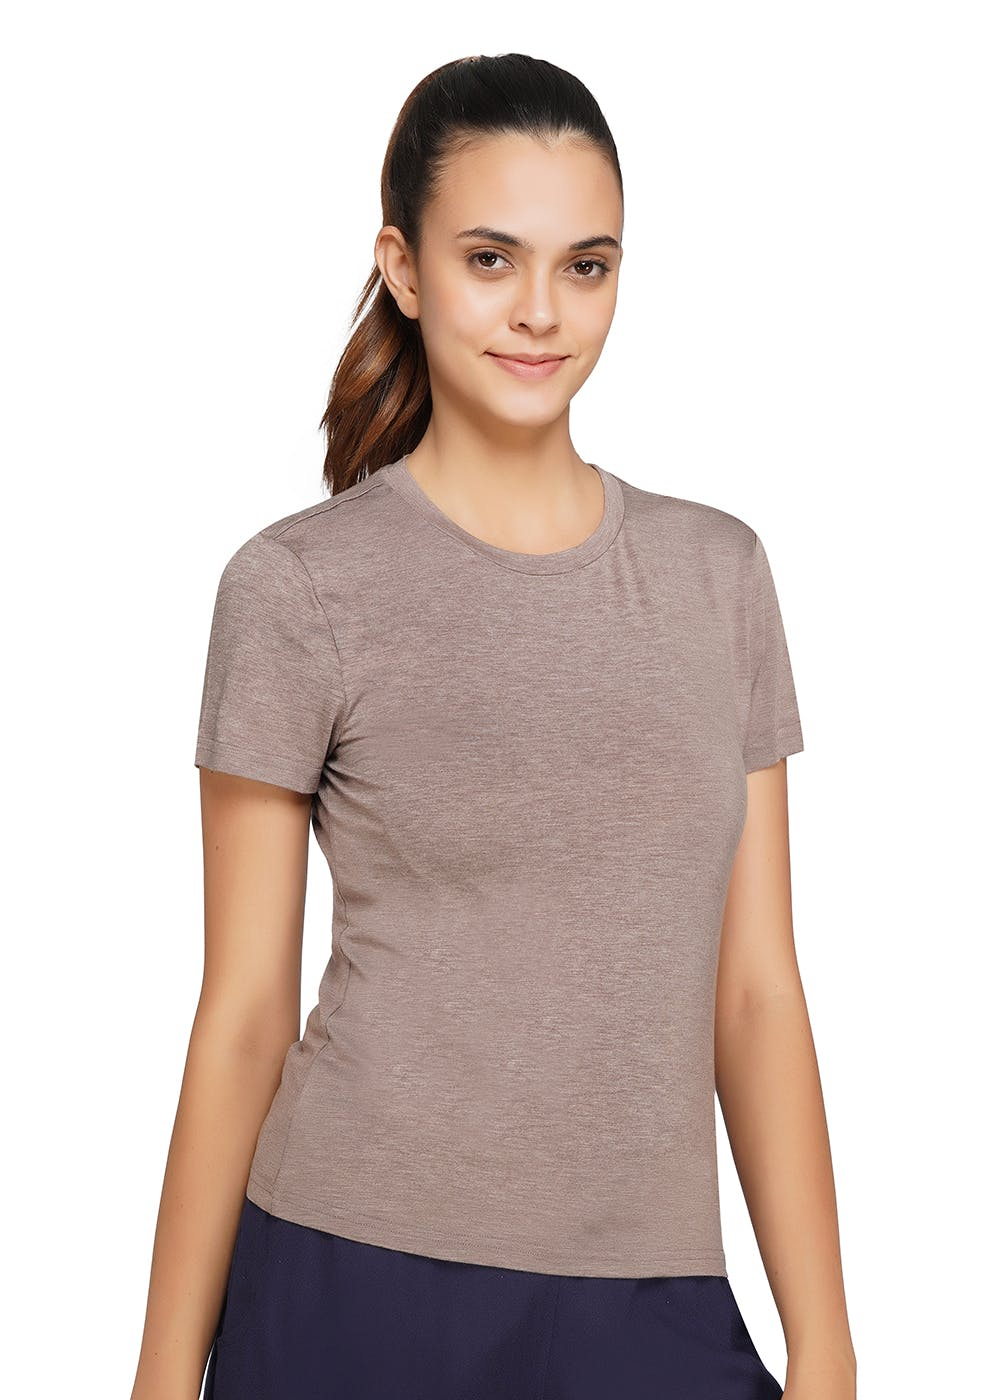 Basic Solid Round Neck Active T-Shirt - Brown